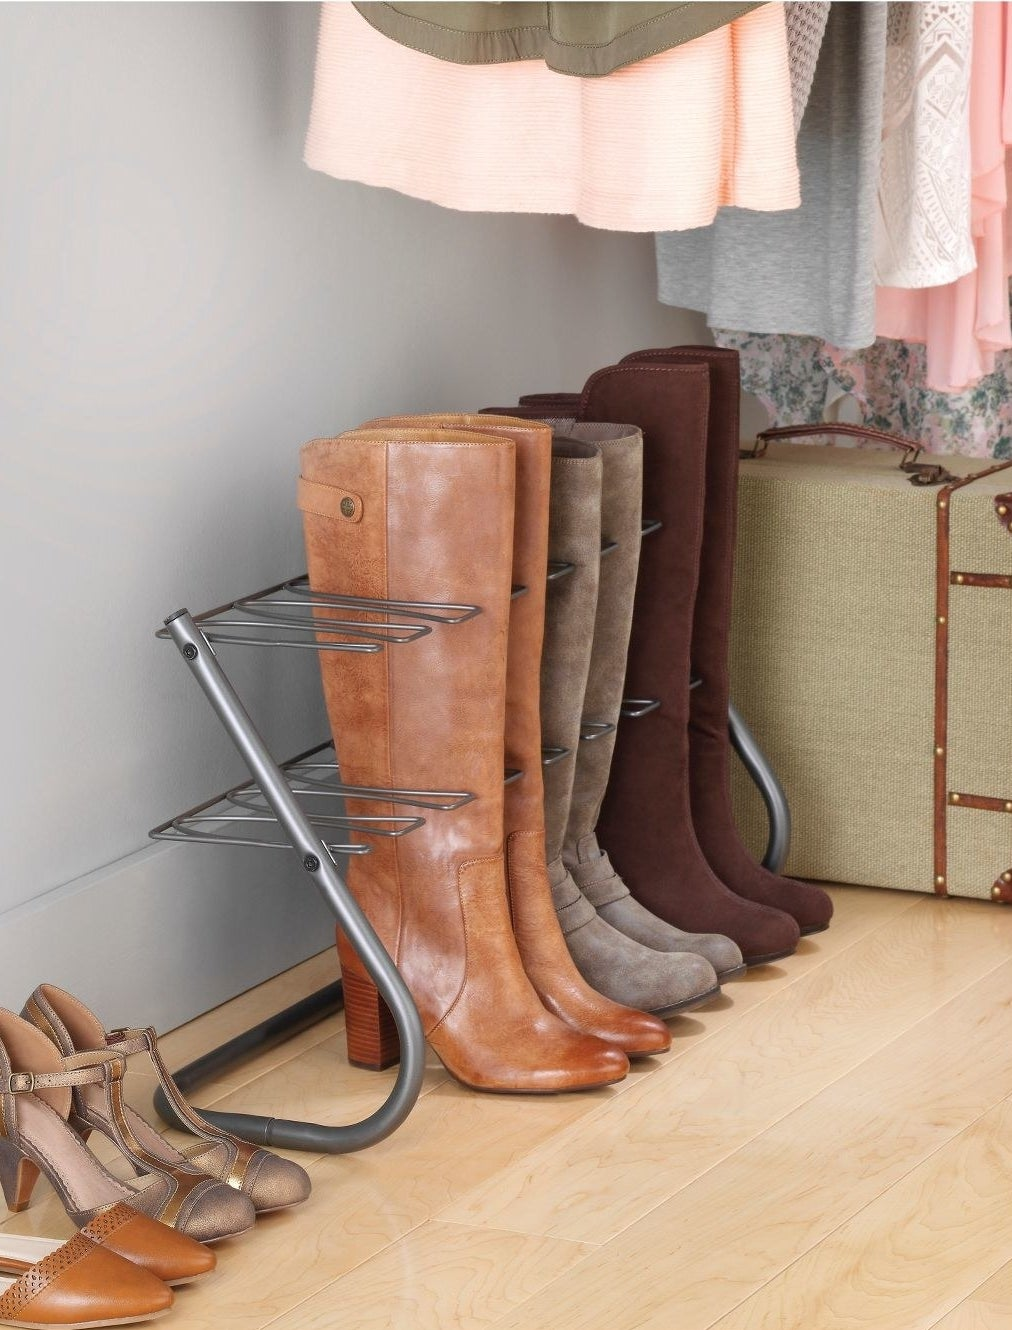 The boot rack in a gunmetal finish